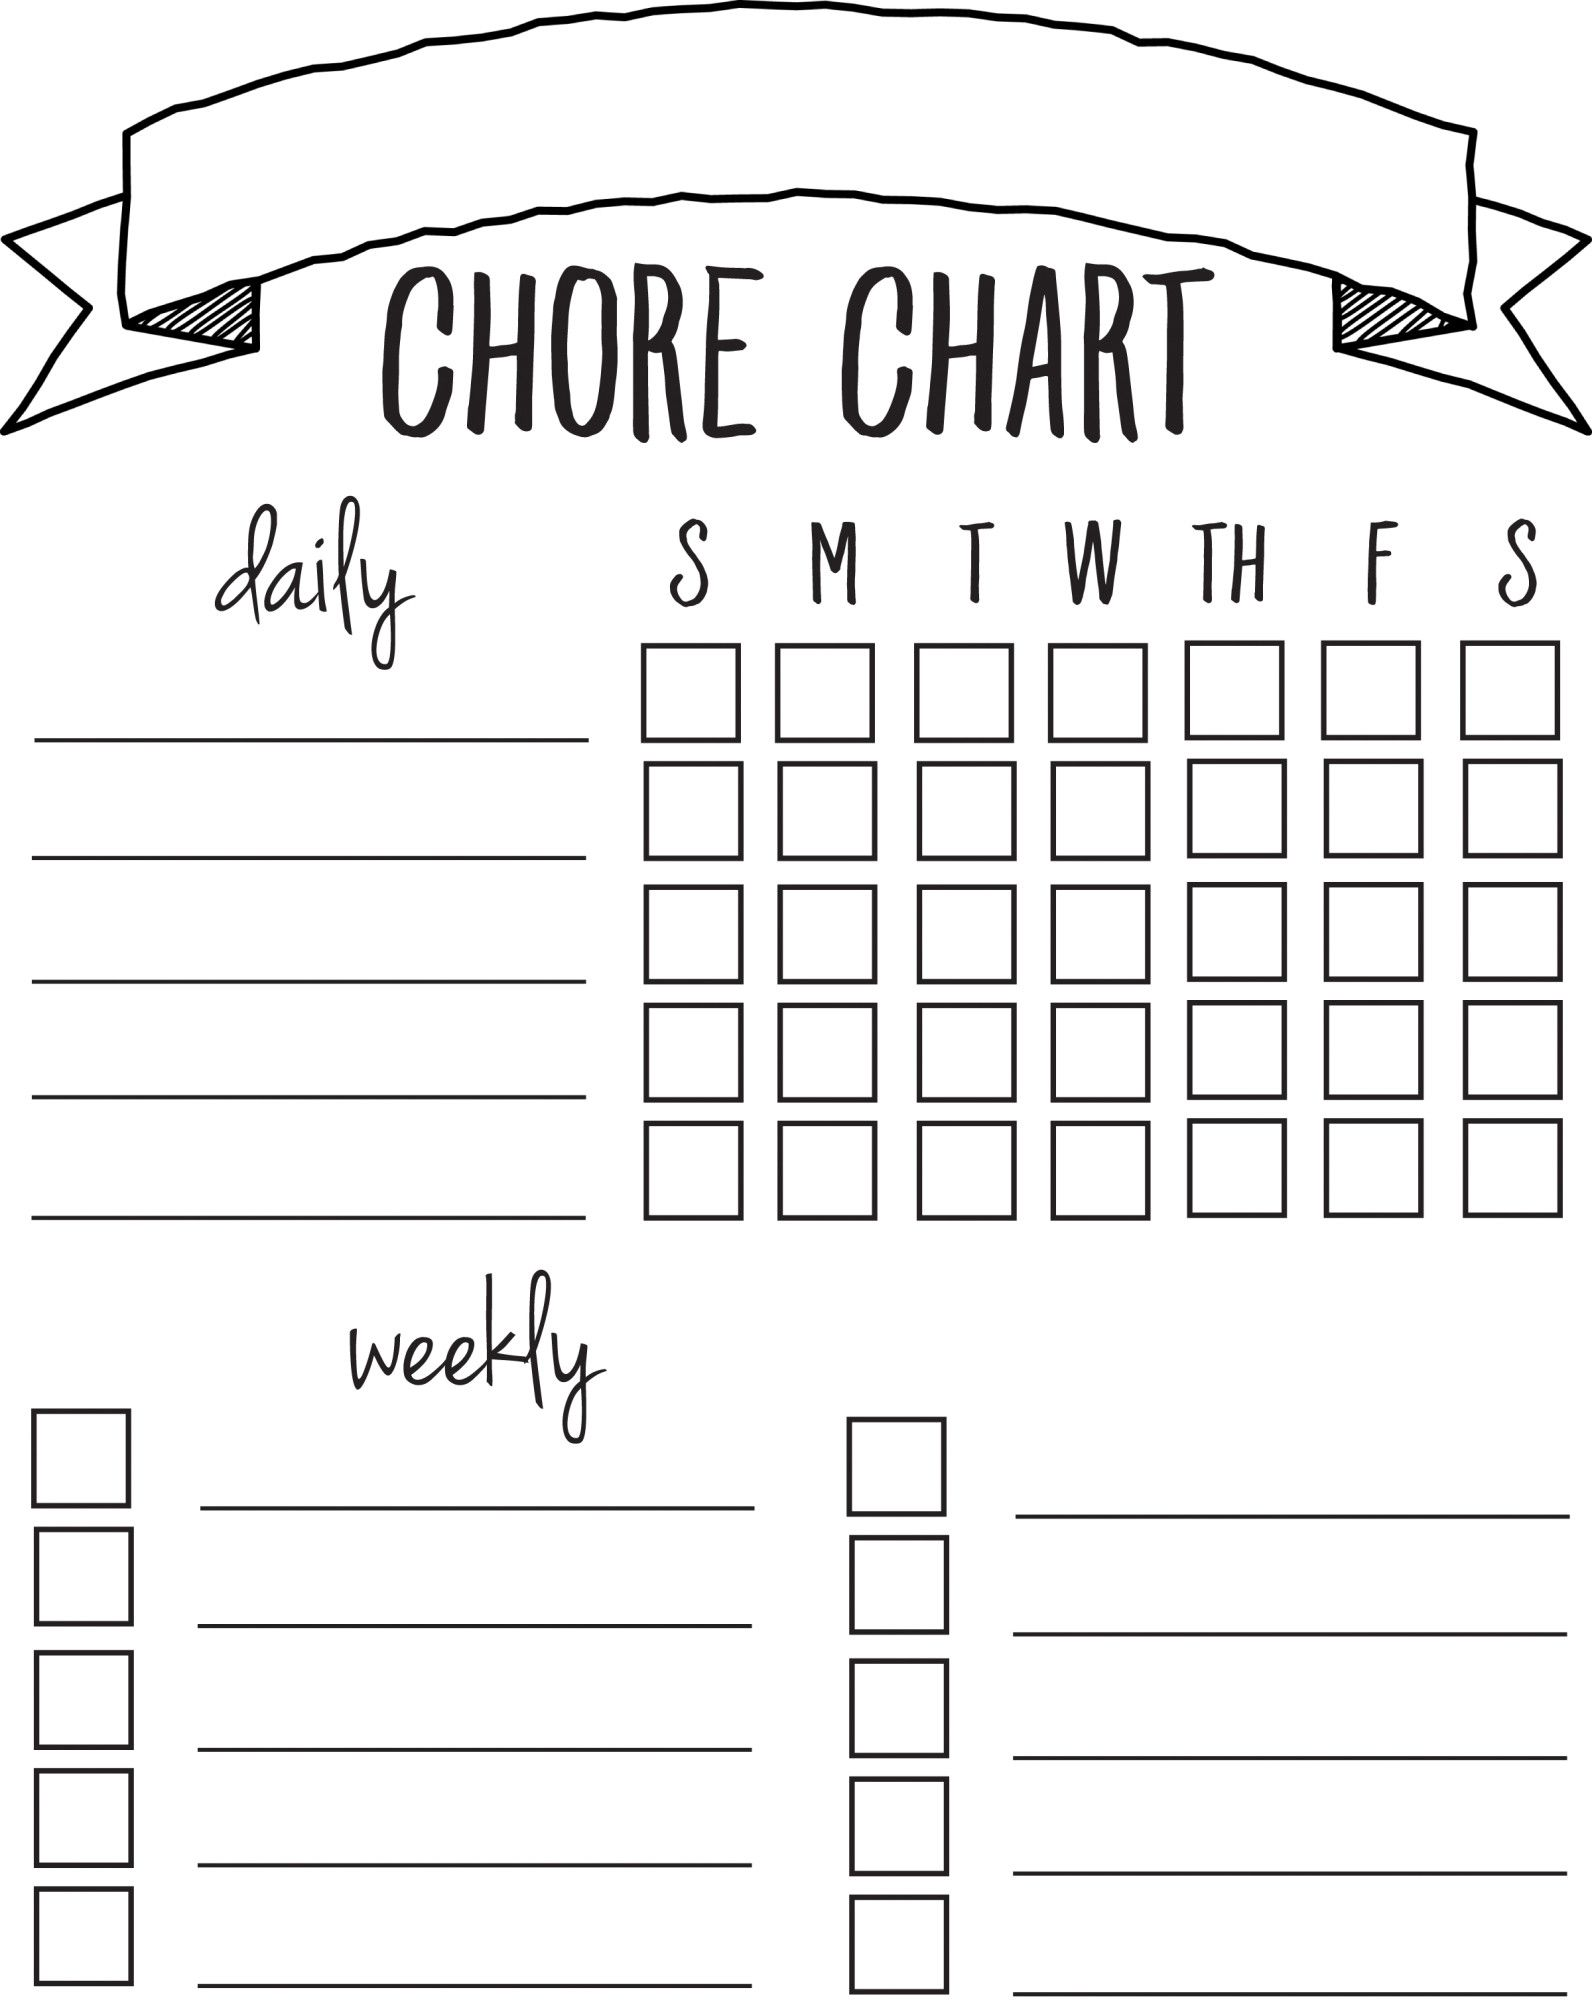 image regarding Printable Chore Chart for Kids known as Do it yourself Printable Chore Chart Household Manage Chore chart